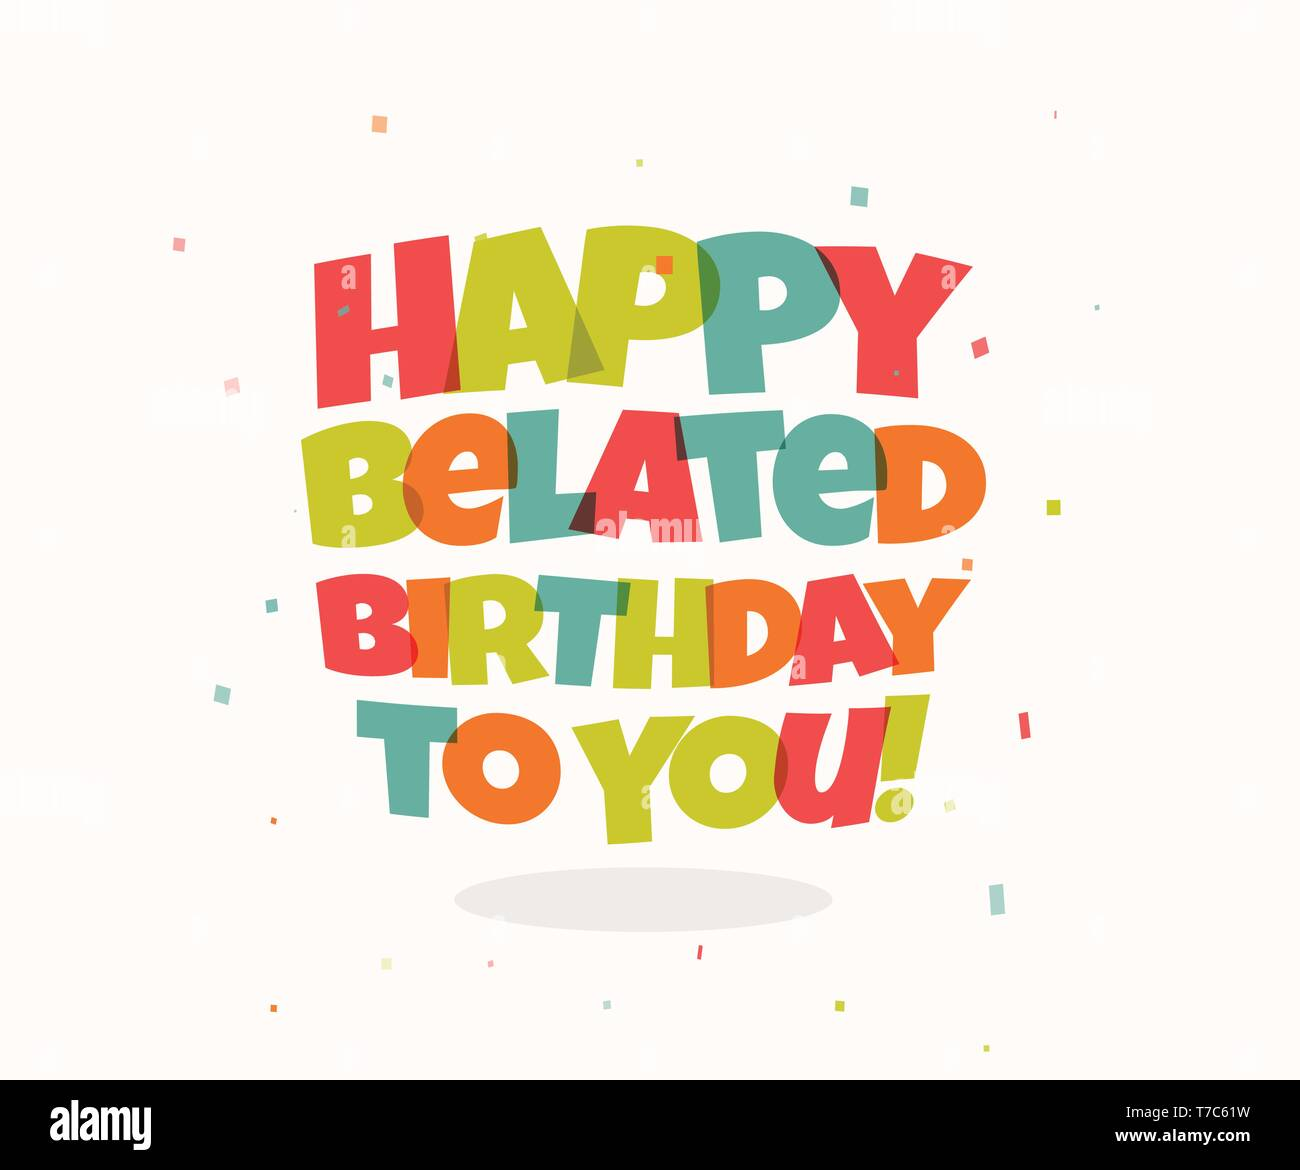 Greeting card for birthday. Colorful letters and confetti. Happy birthday Congrats vector illustration. Negative space lettering design. - Stock Image